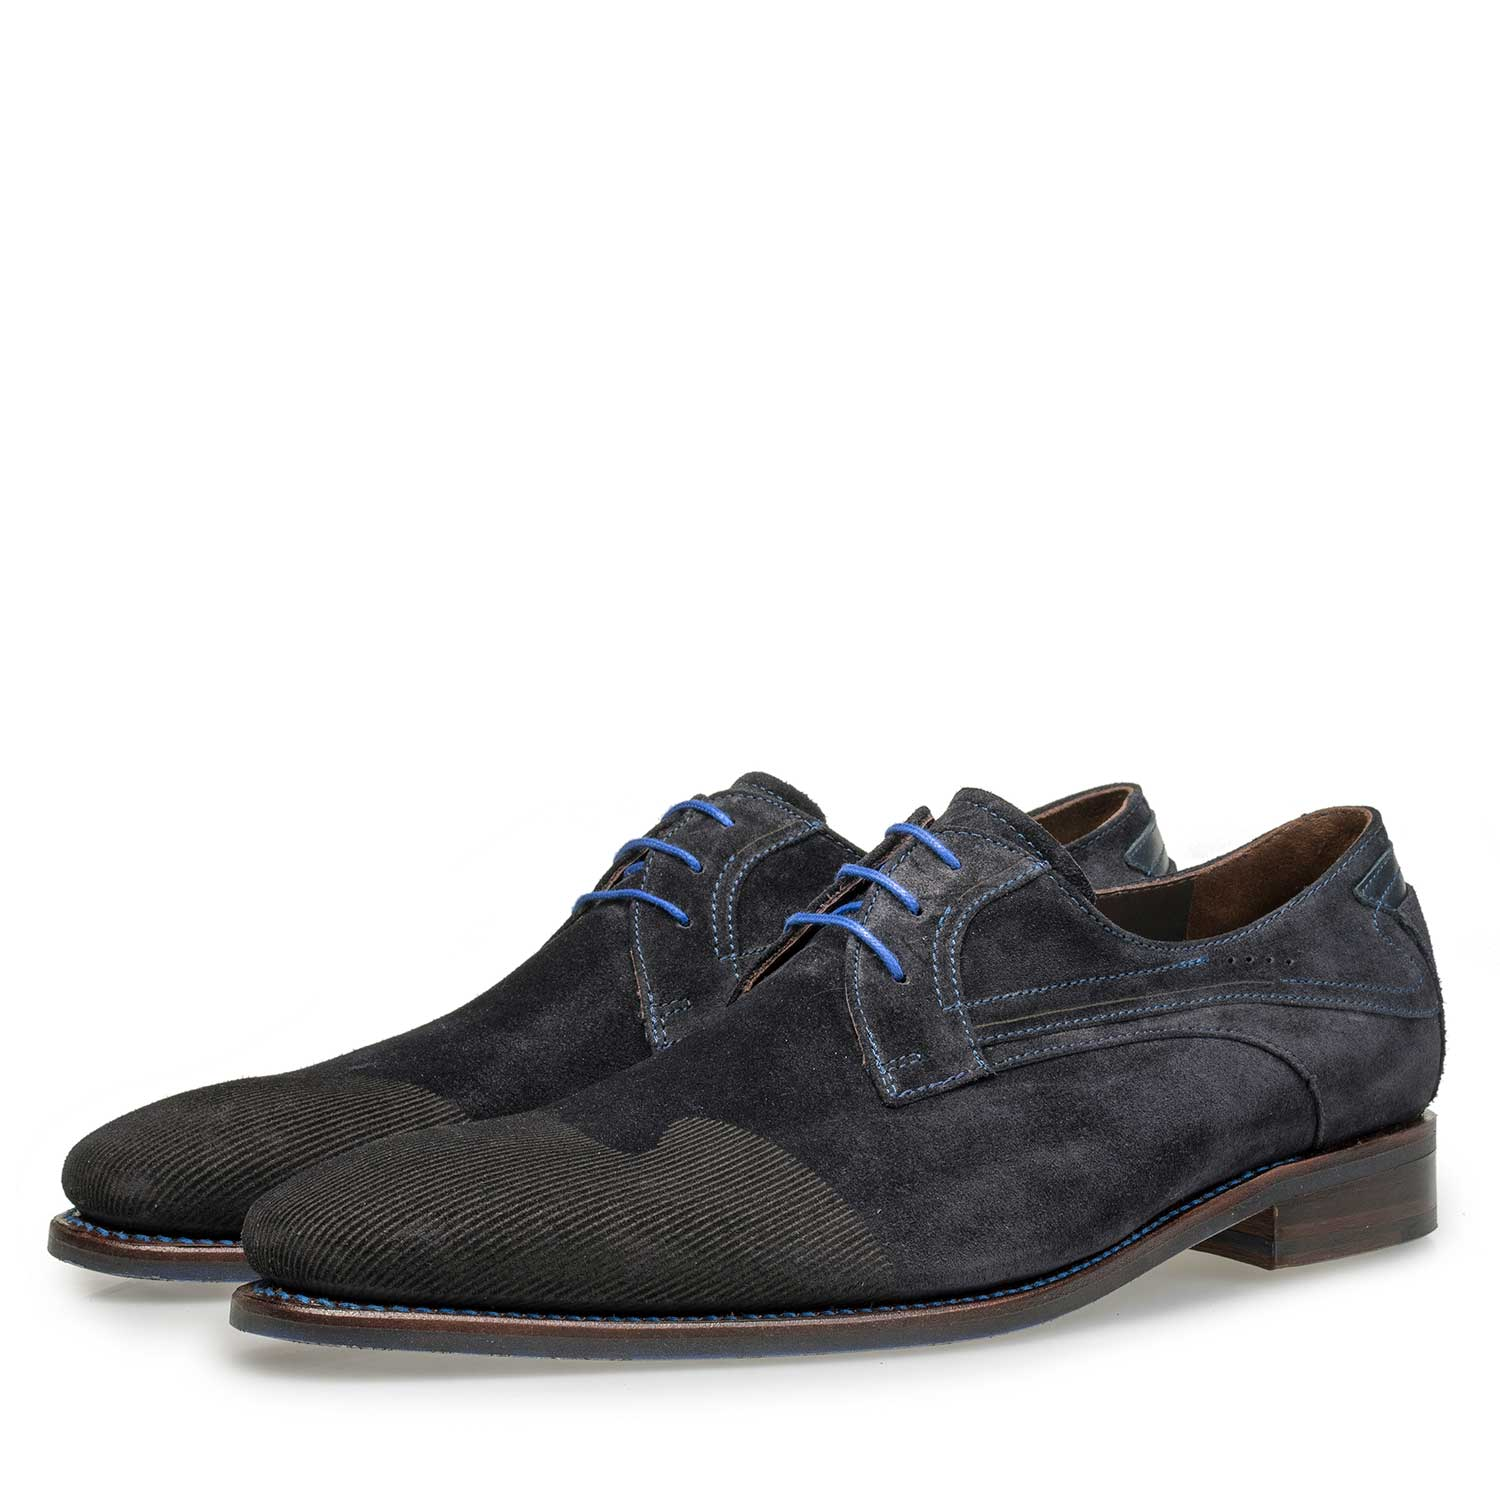 18073/04 - Dark blue printed suede leather lace shoe